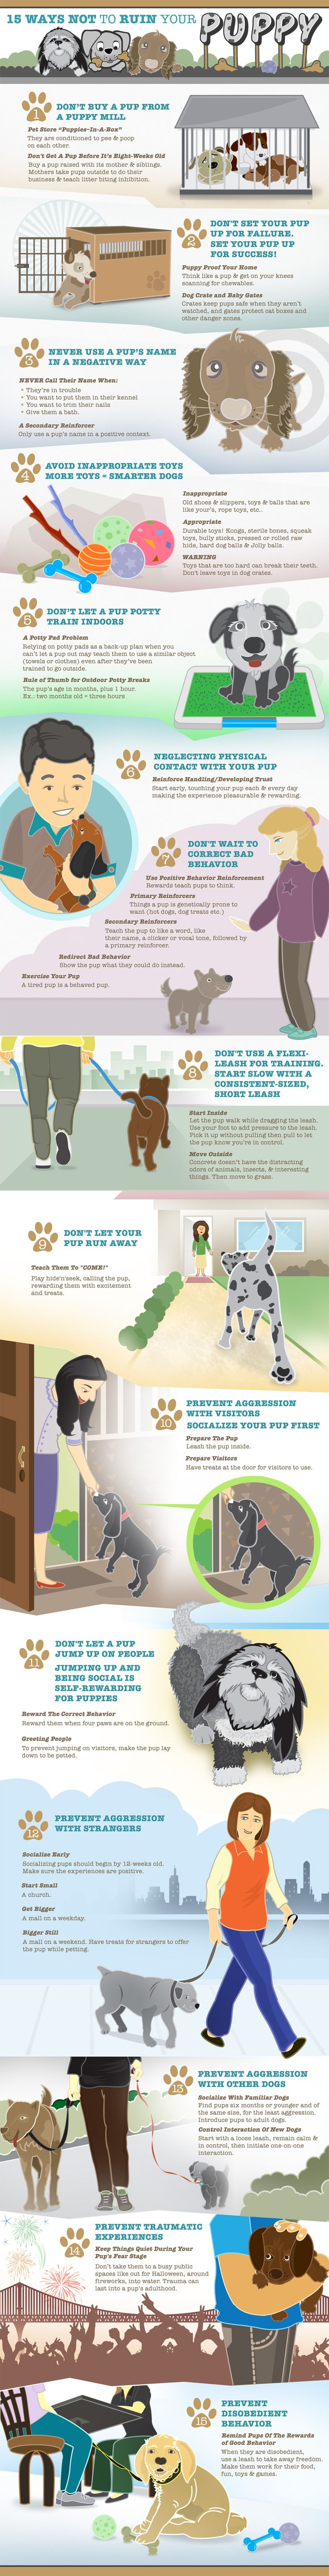 best willowus board images on pinterest pets doggies and